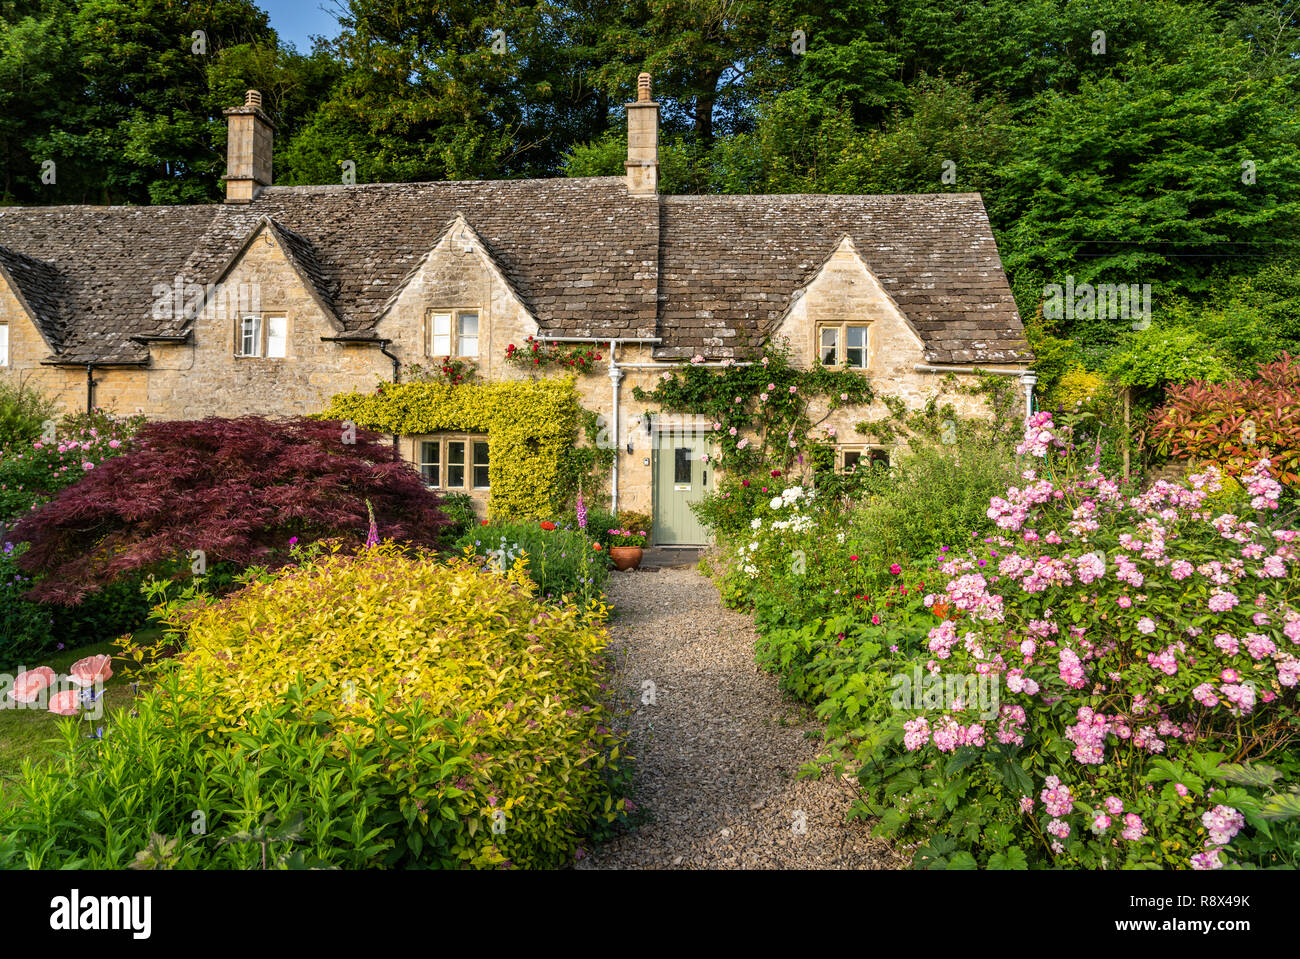 A Large Stone Home With Flower Gardens In The Cotswold Village Of